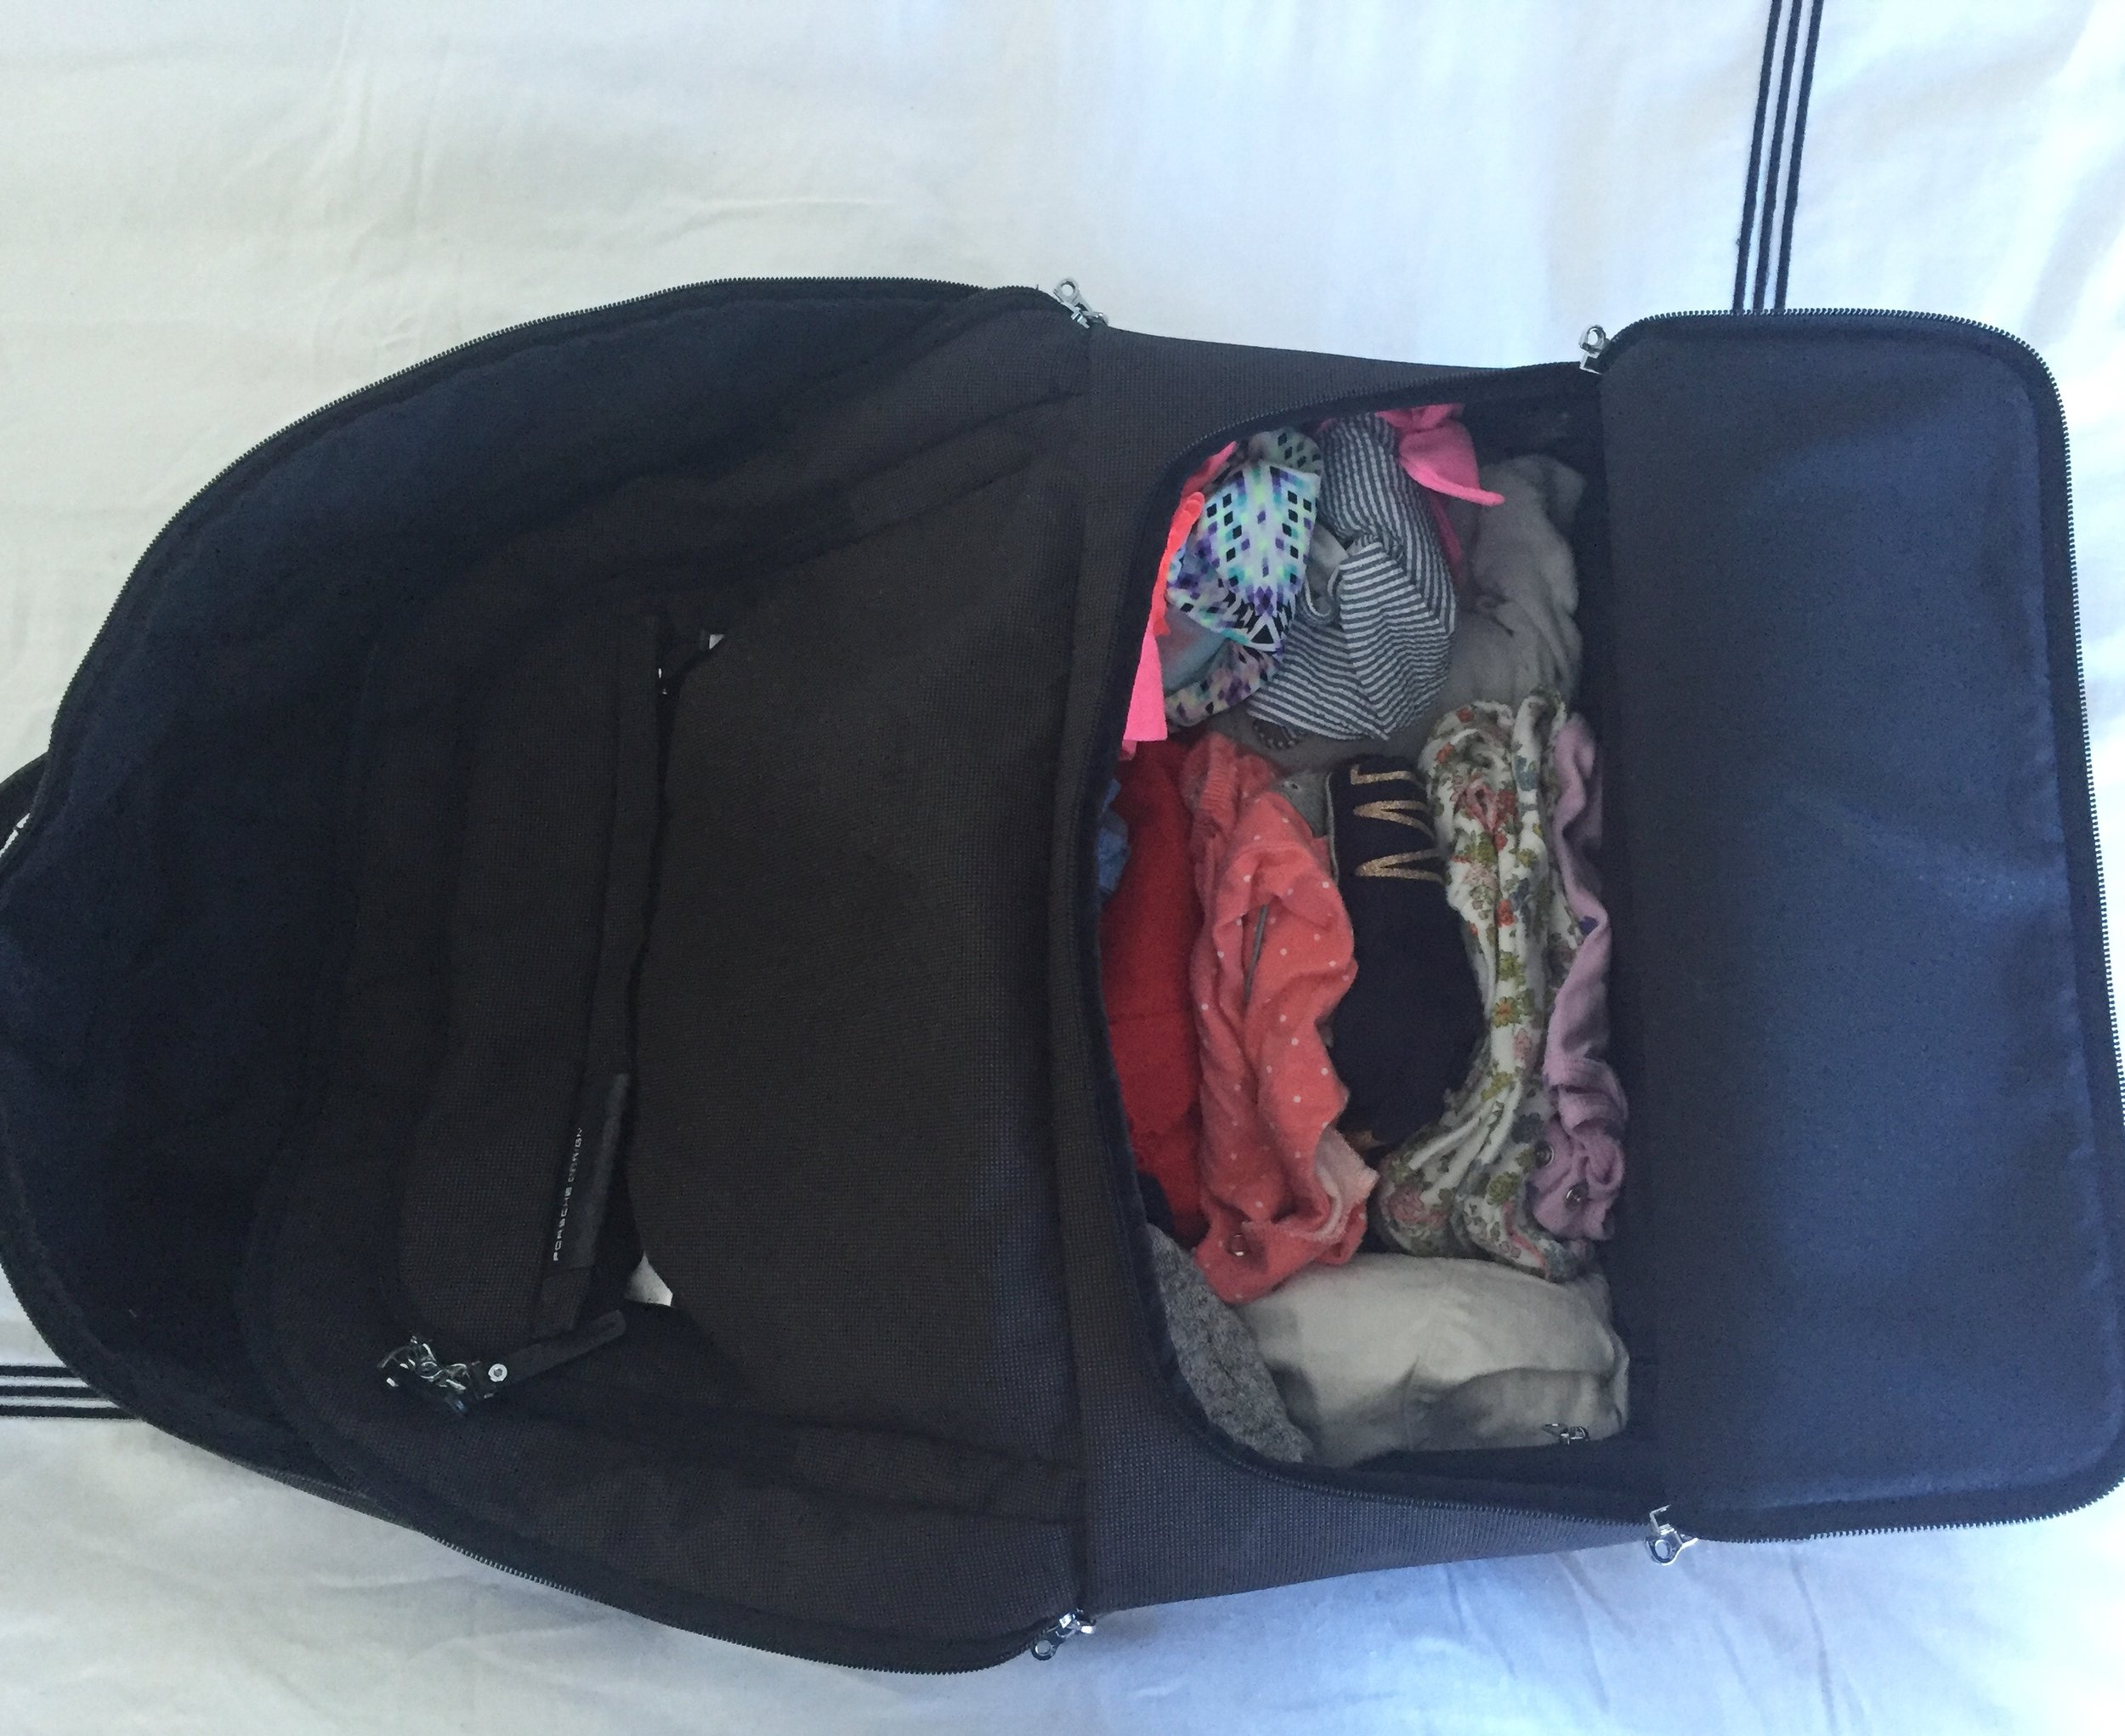 First Layer - Baby gets the smaller side of the suitcase. Roll outfits tight and put them in rows. Keep extra onesies/socks/bibs at the edge.